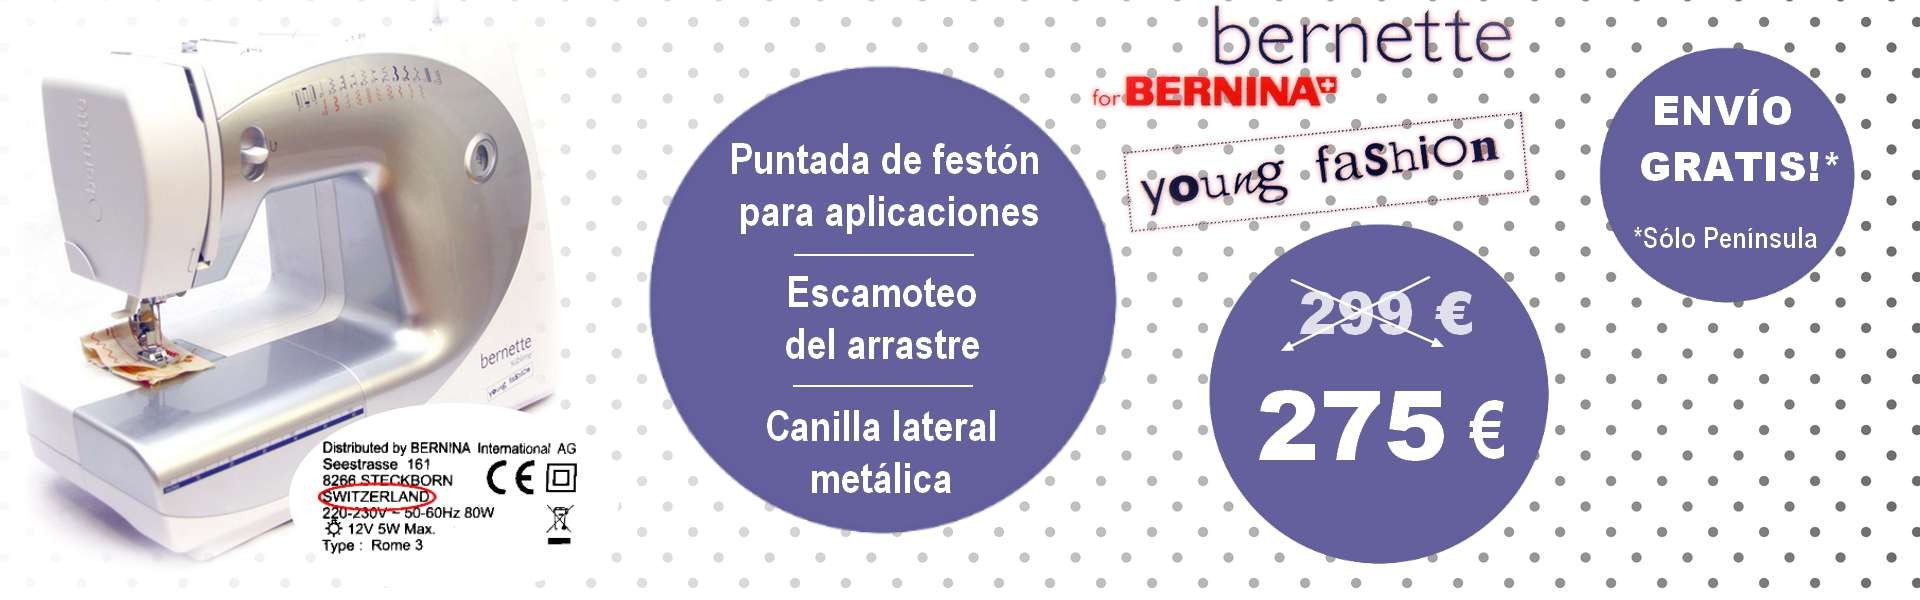 Bernette Young Fashion